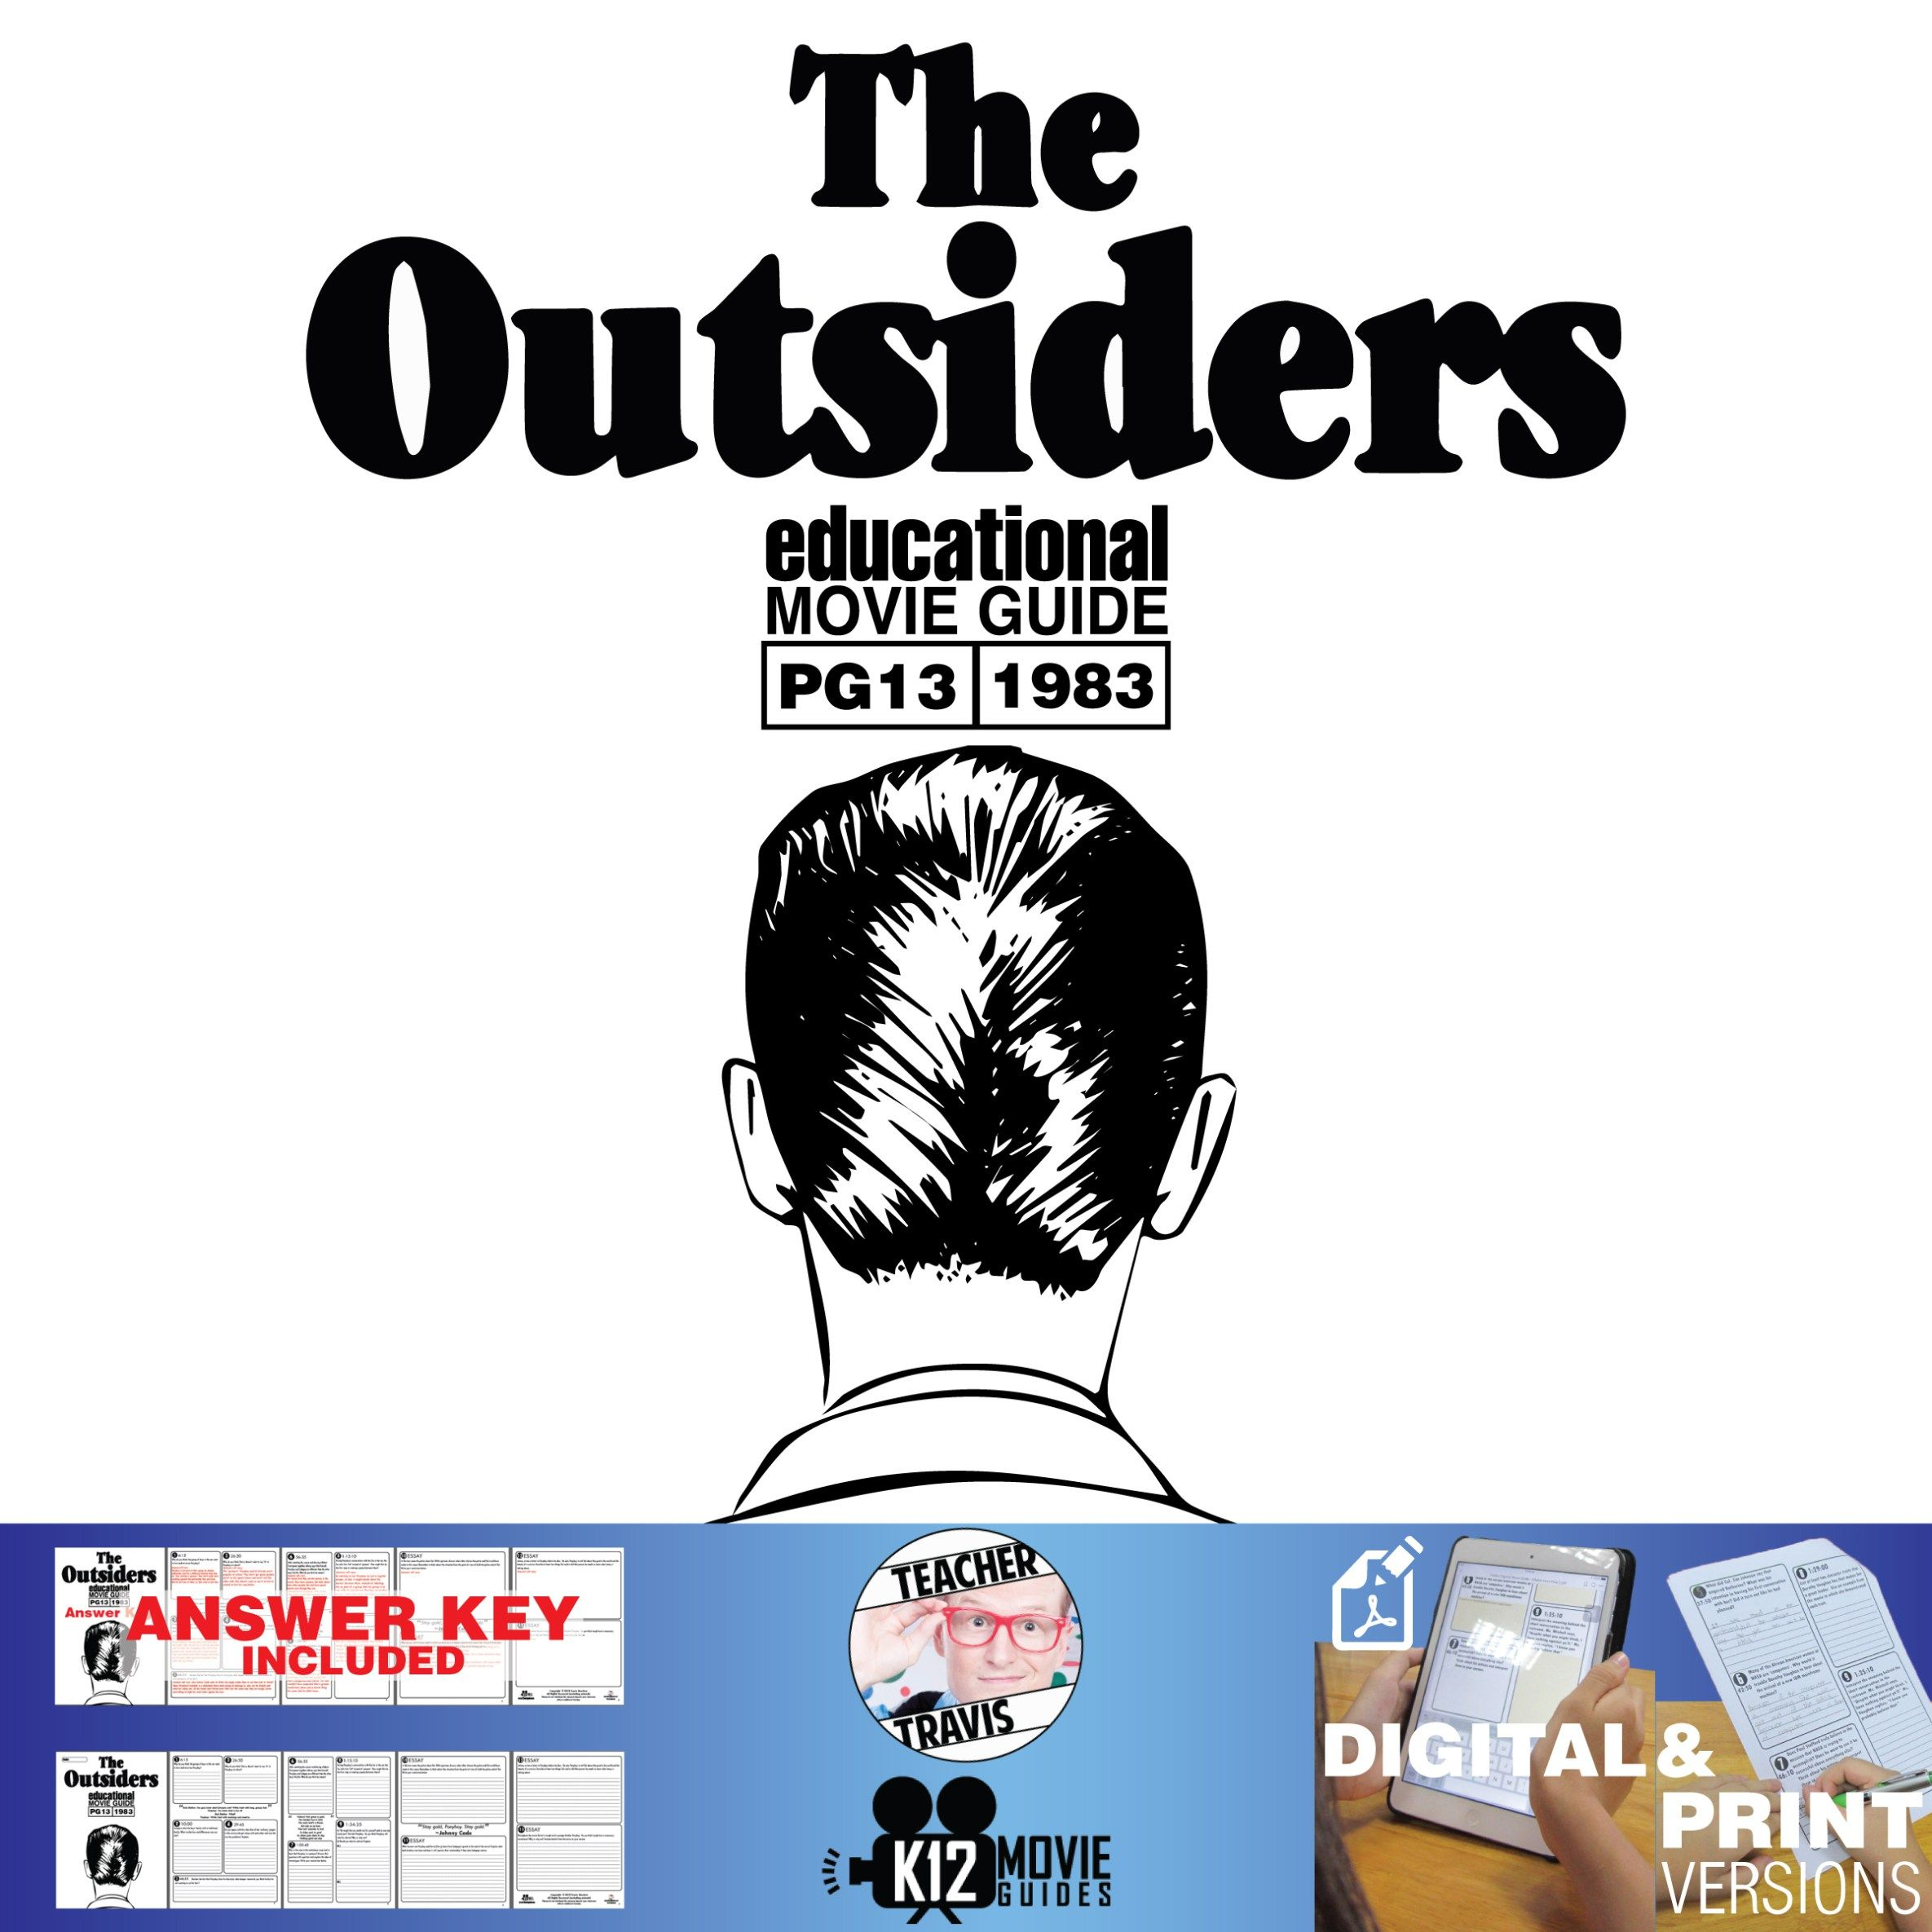 The Outsiders Movie Guide